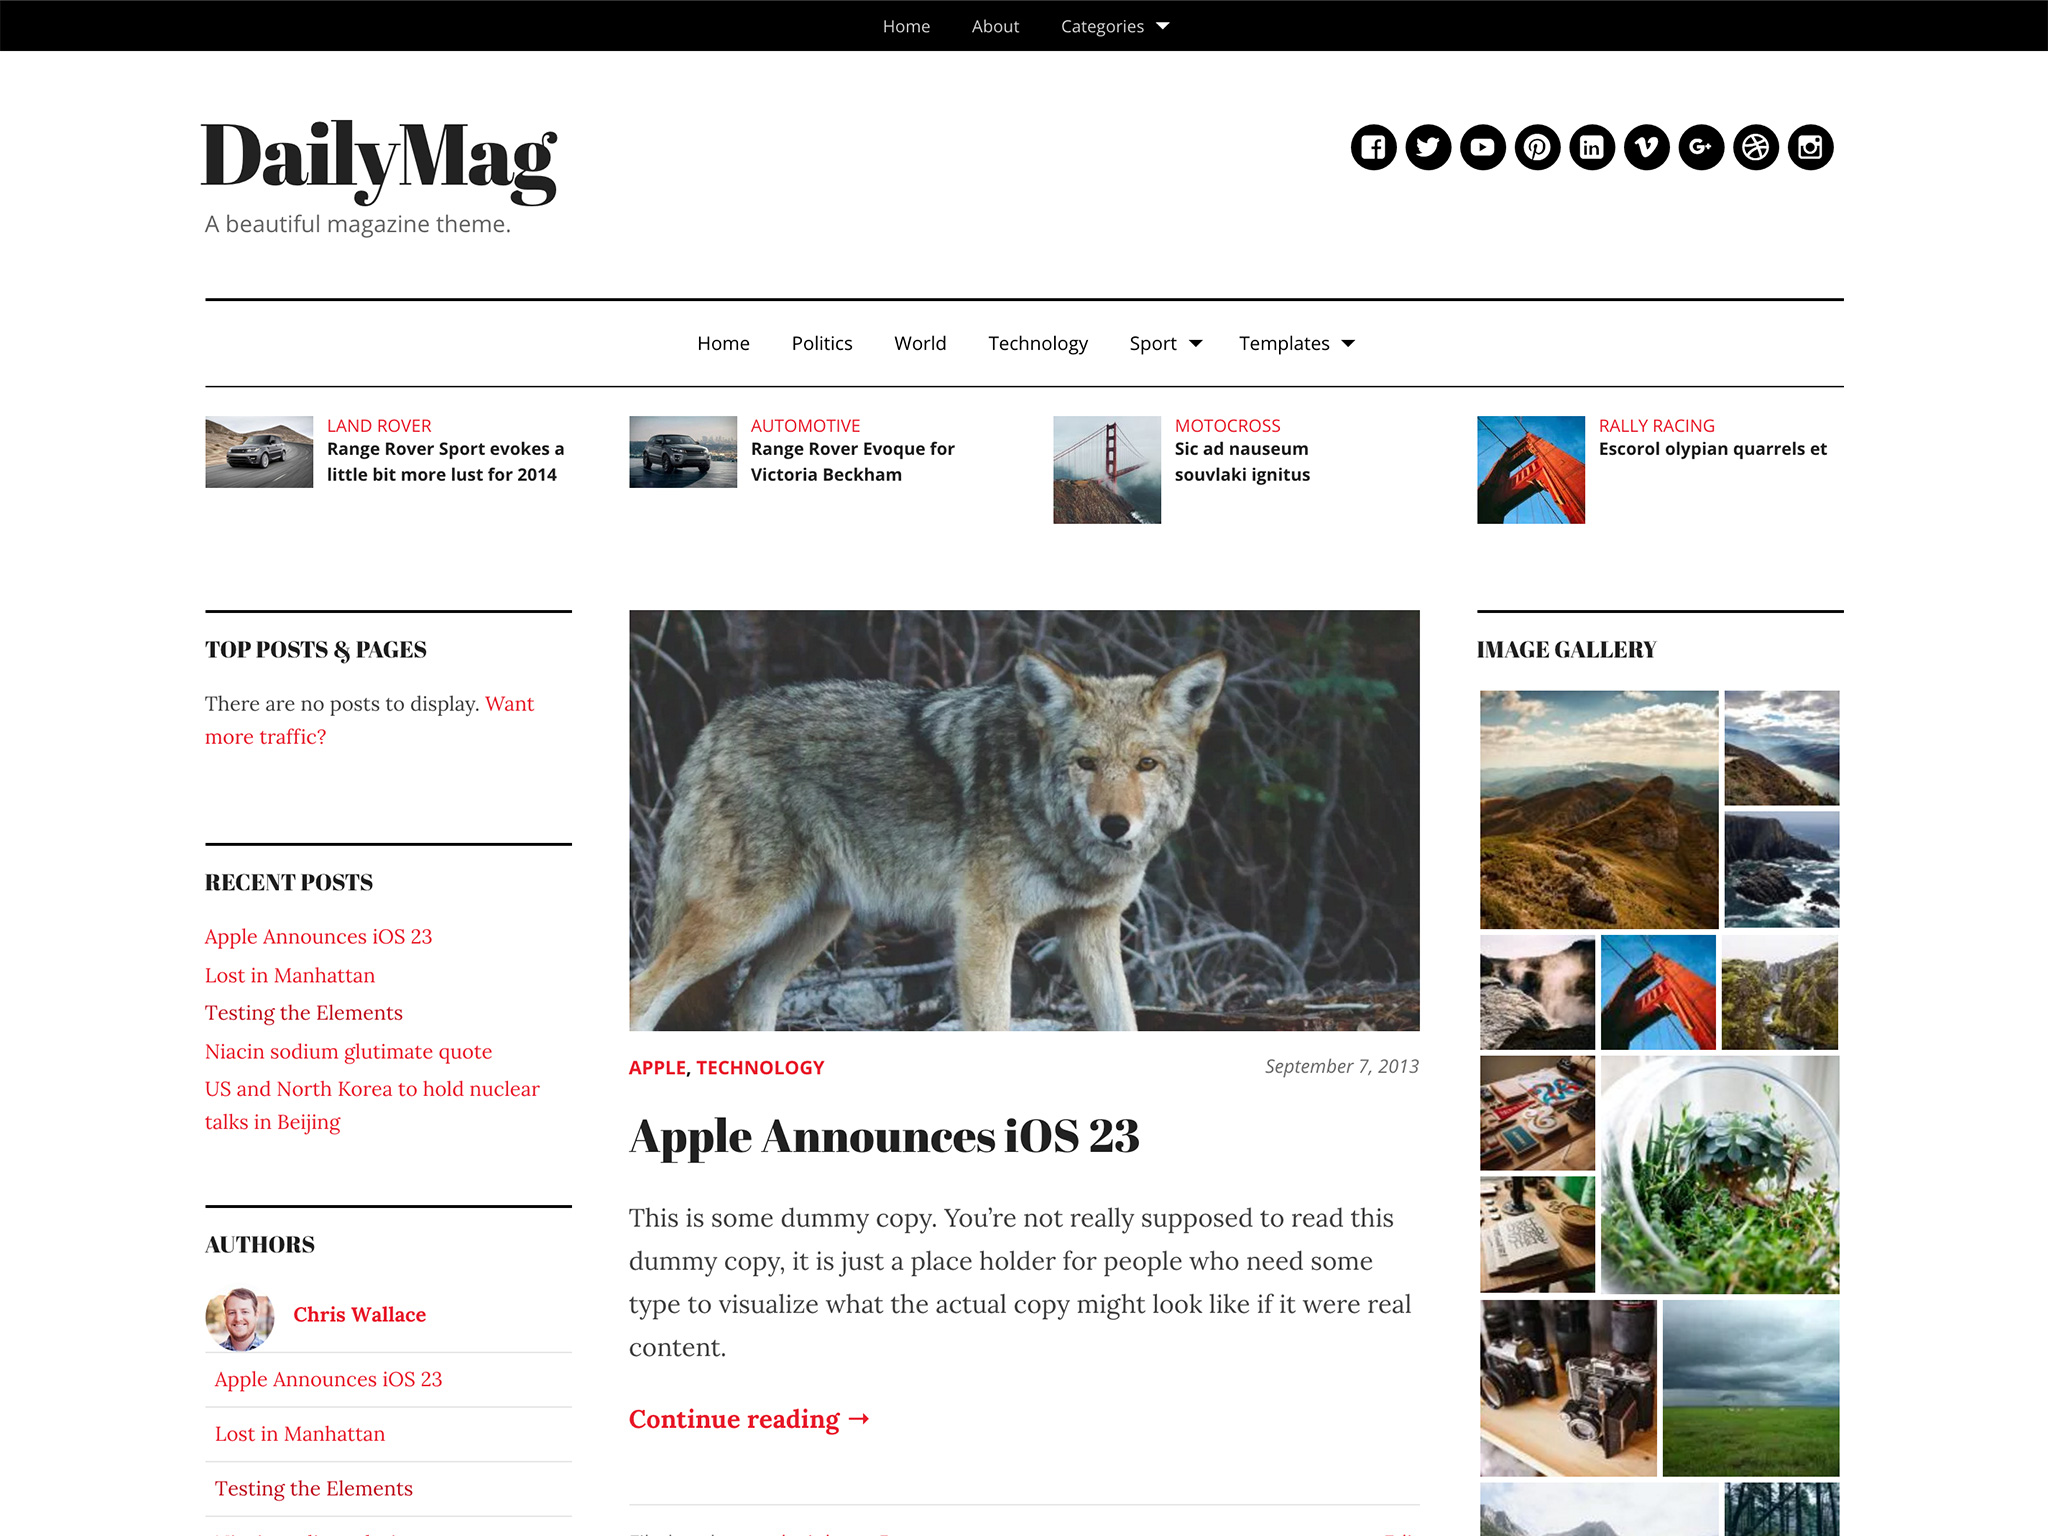 Screenshot of the DailyMag theme